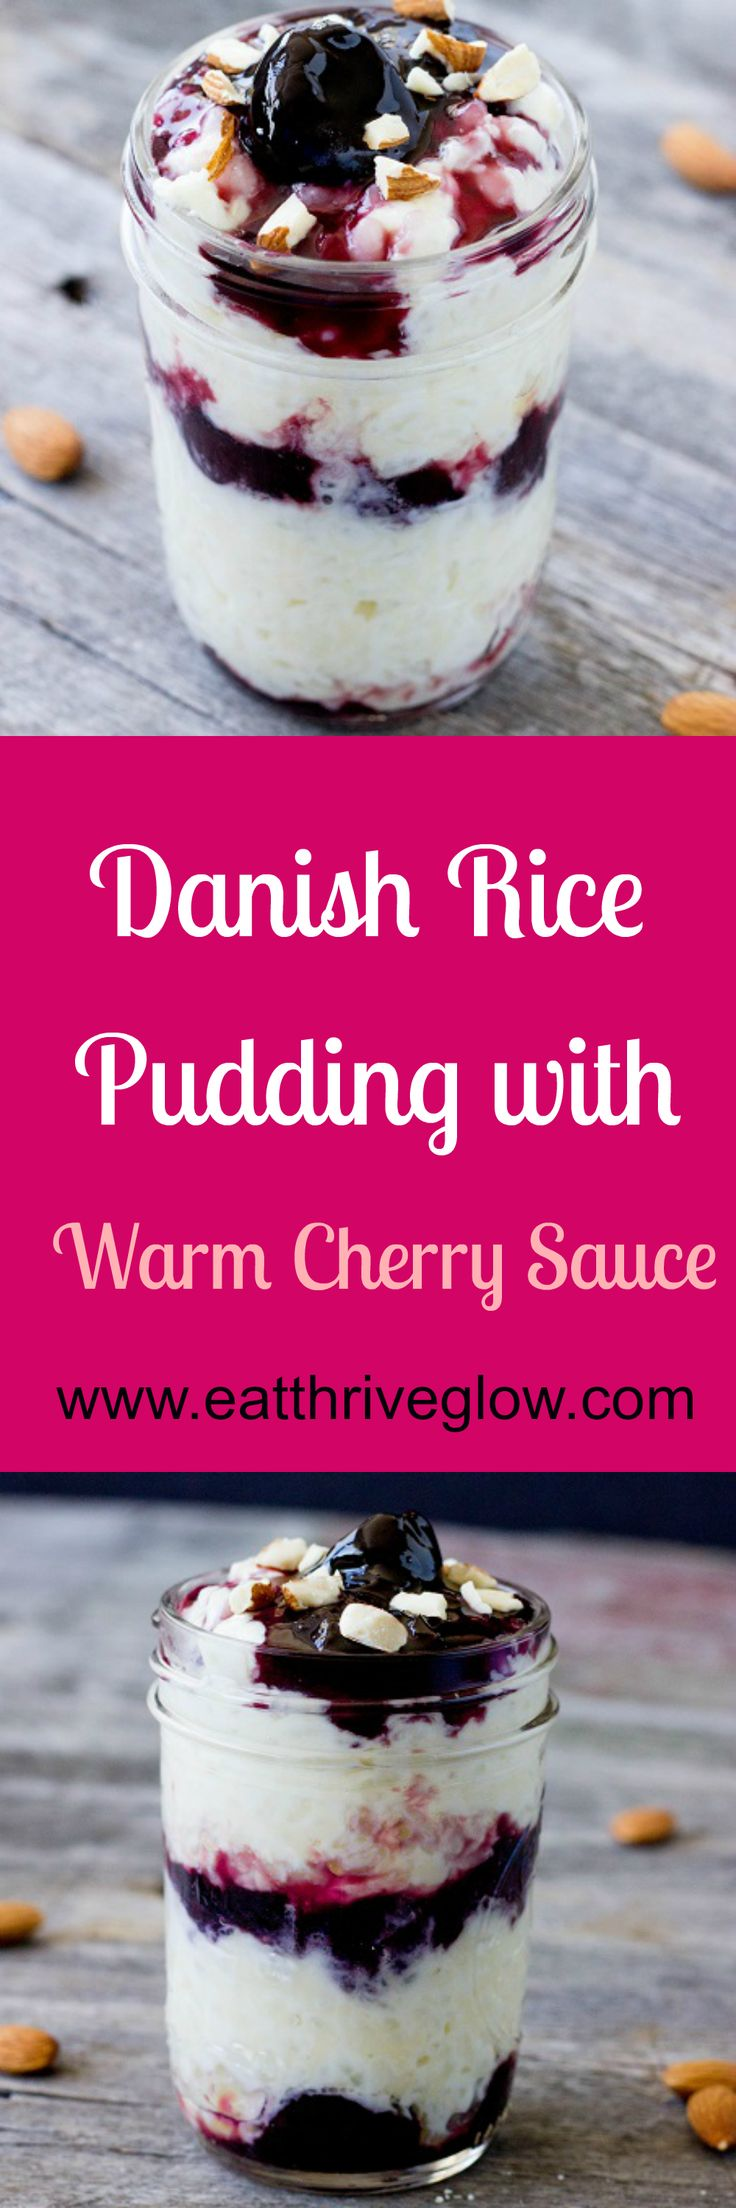 Recipe for a traditional, creamy Danish rice pudding dessert with warm cherry sauce, aka Risalamande - Eat Thrive Glow